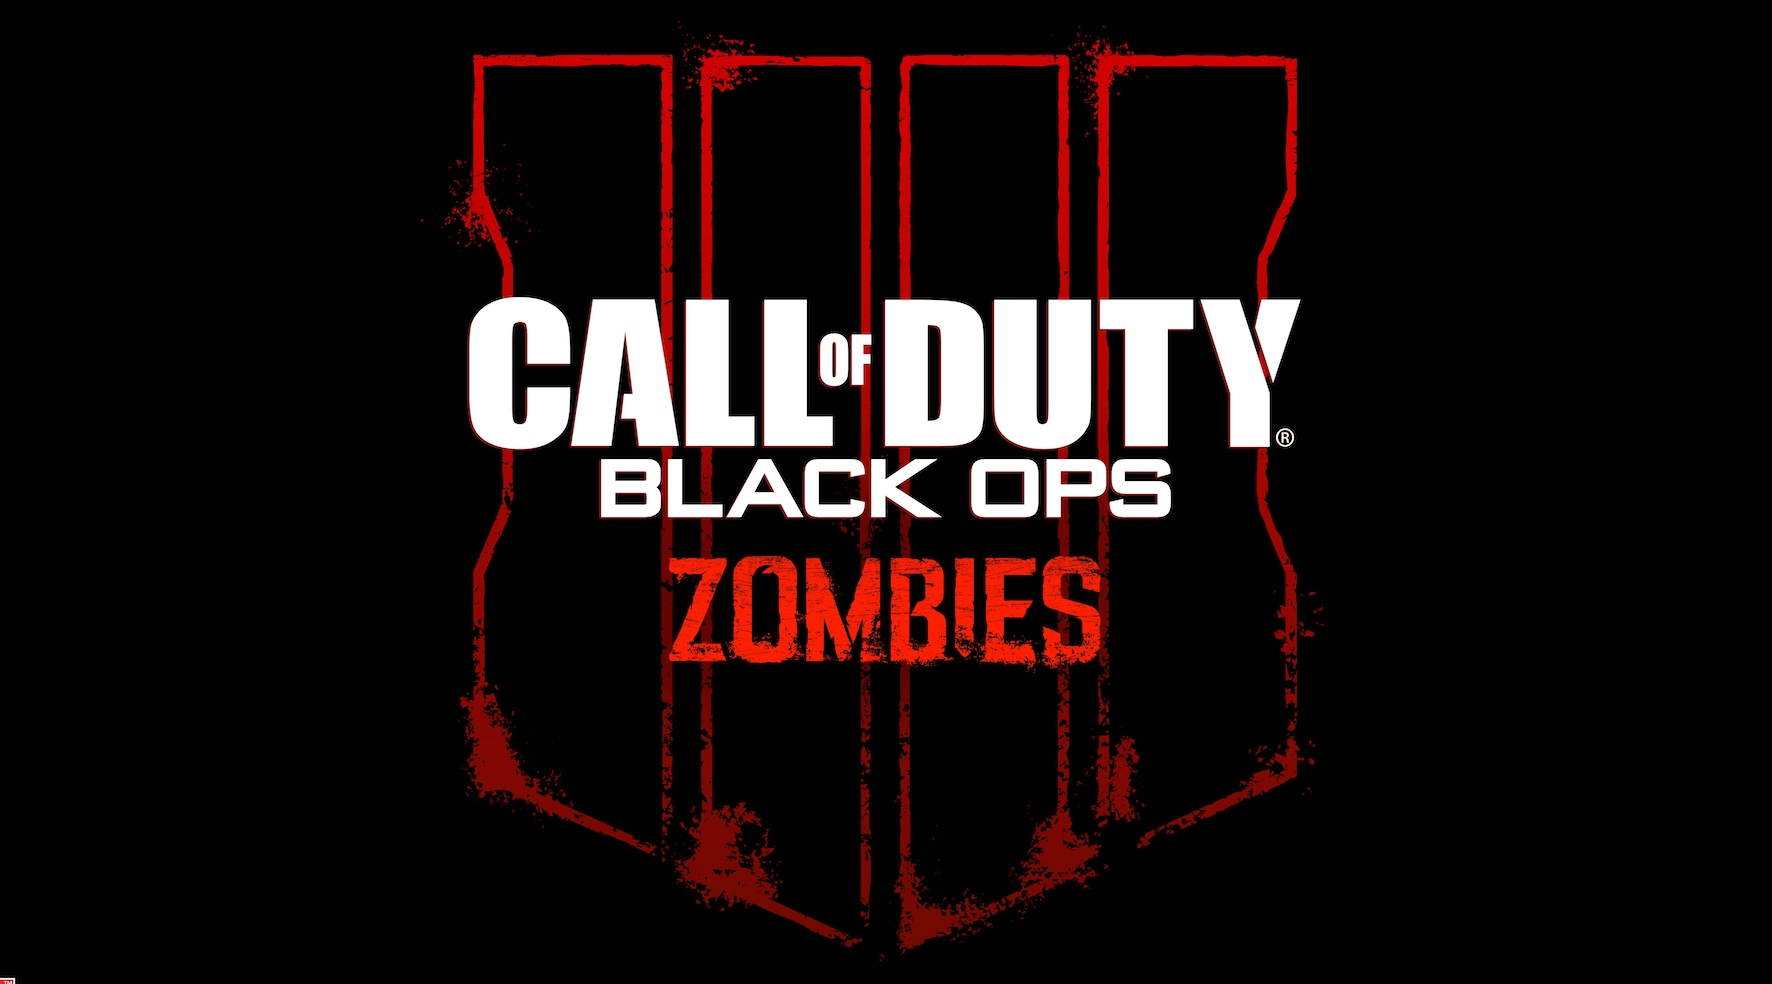 Zombies features in Call of Duty Black Ops 4